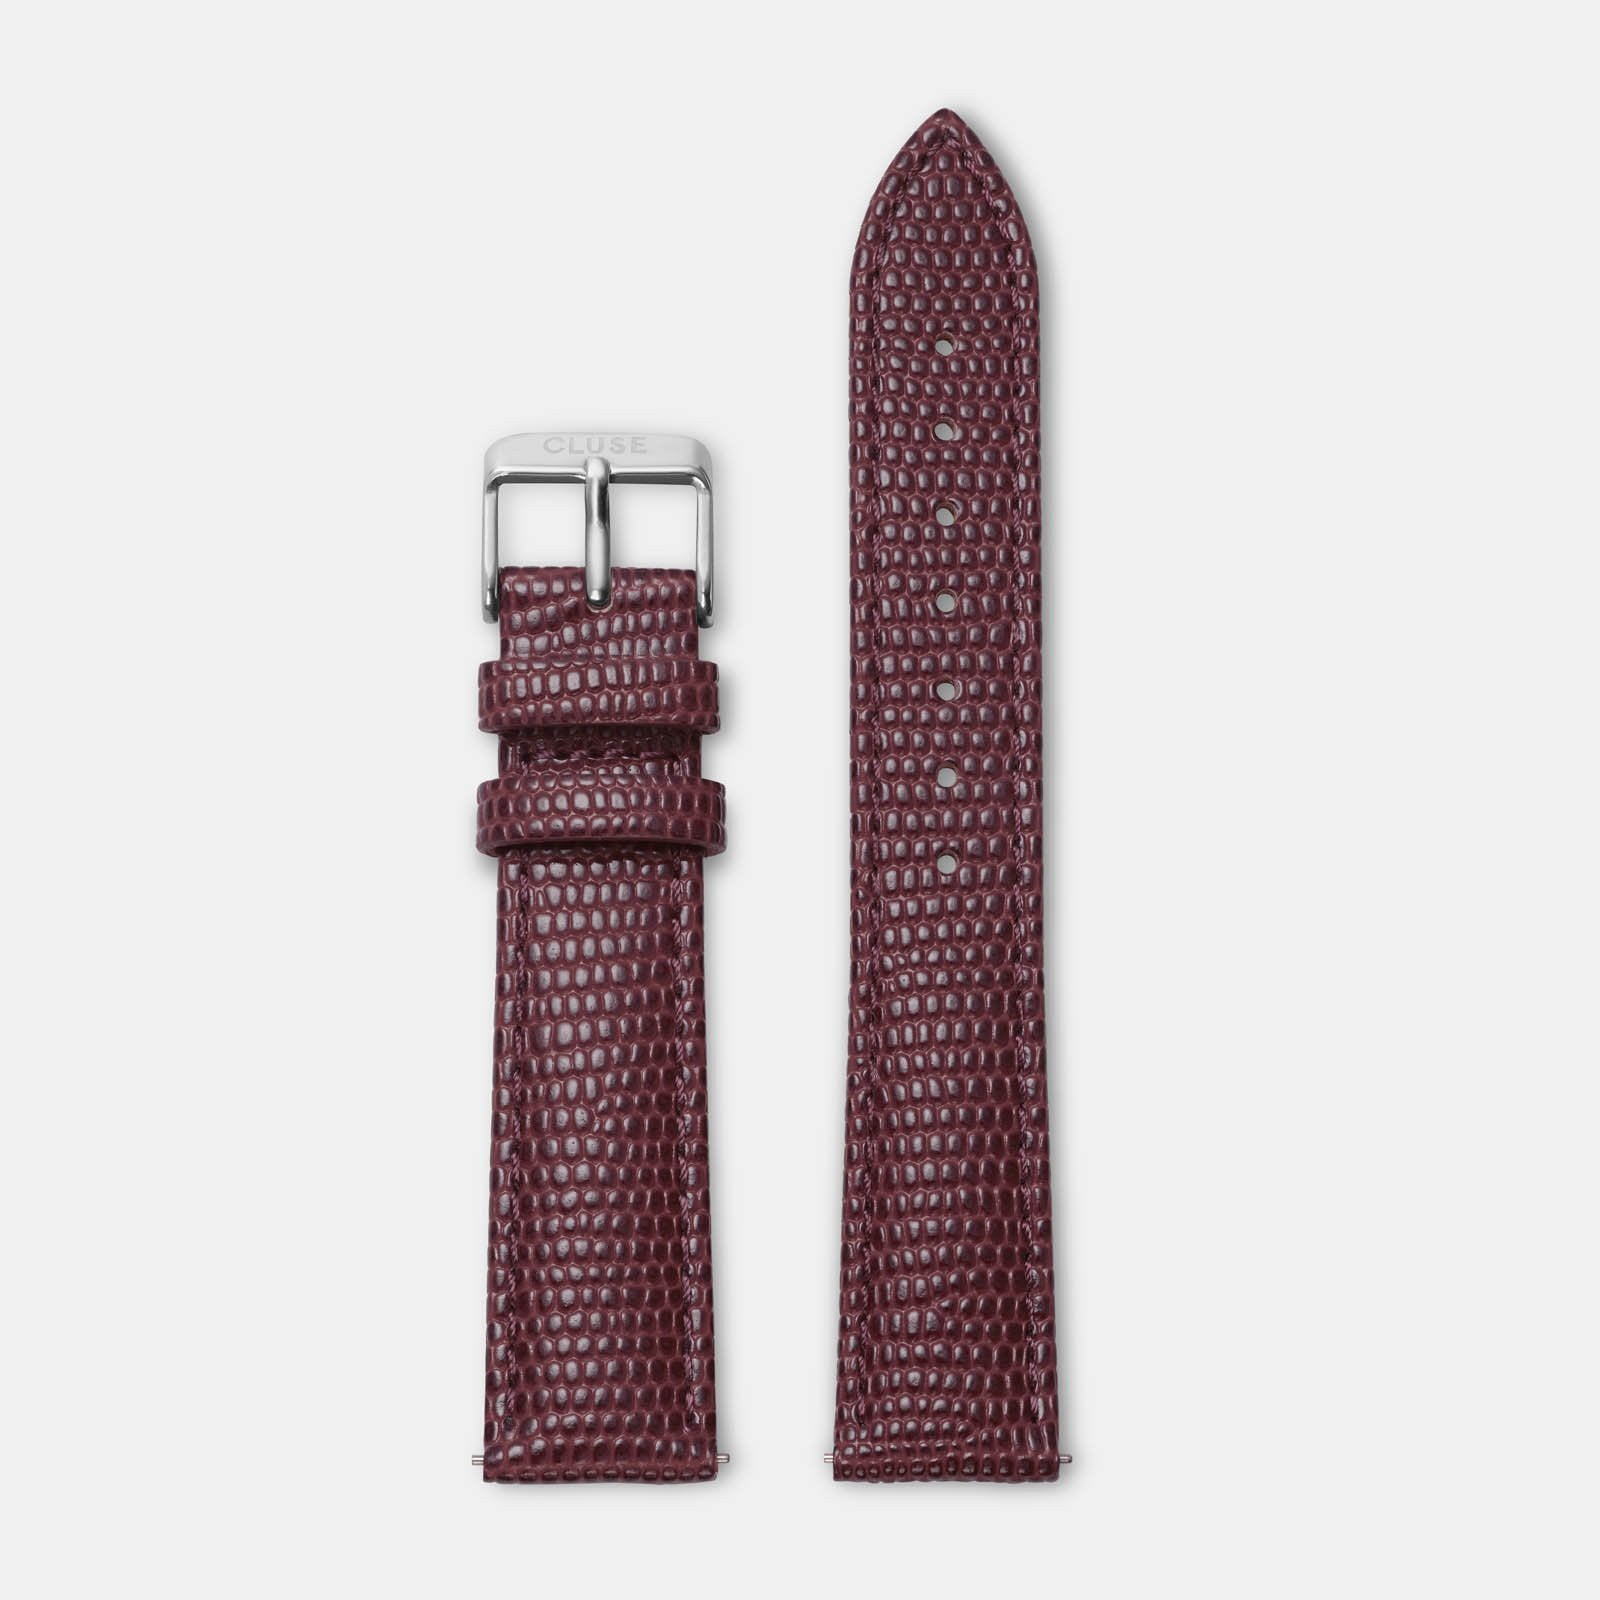 CLUSE 18 mm Strap Burgundy Lizard/Silver CLS078 - strap